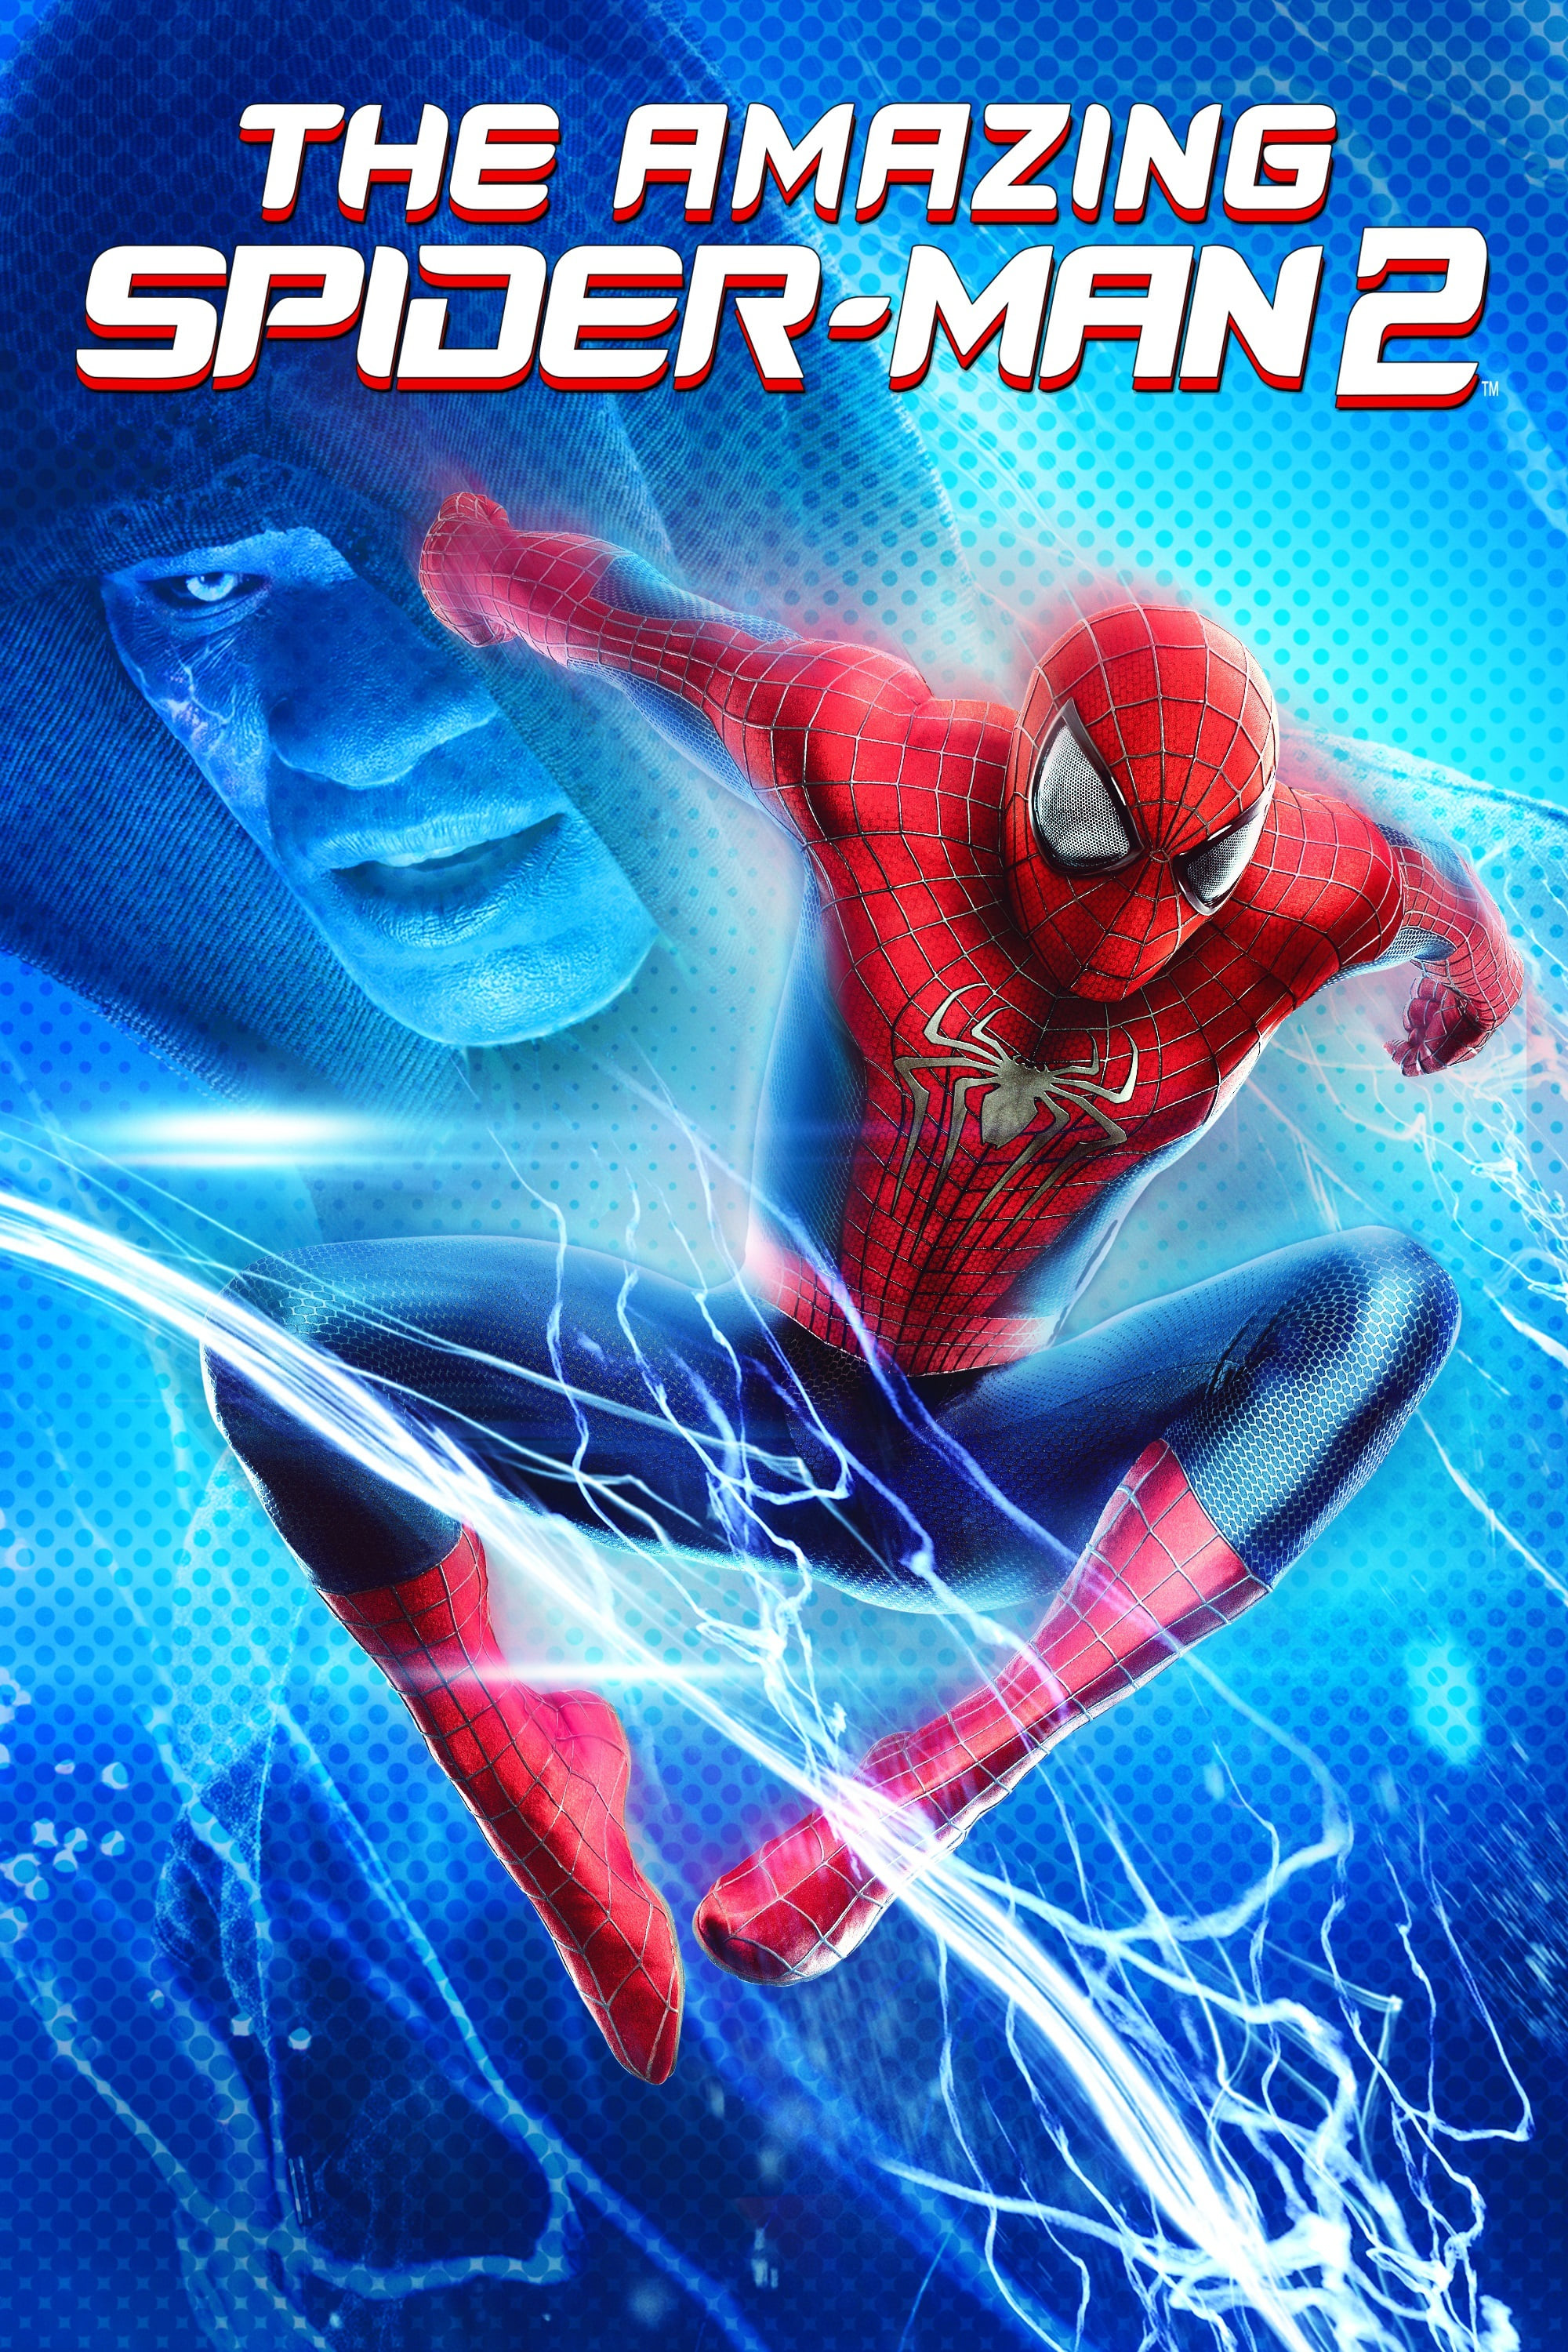 The Amazing Spider Man 2 Ganzer Film